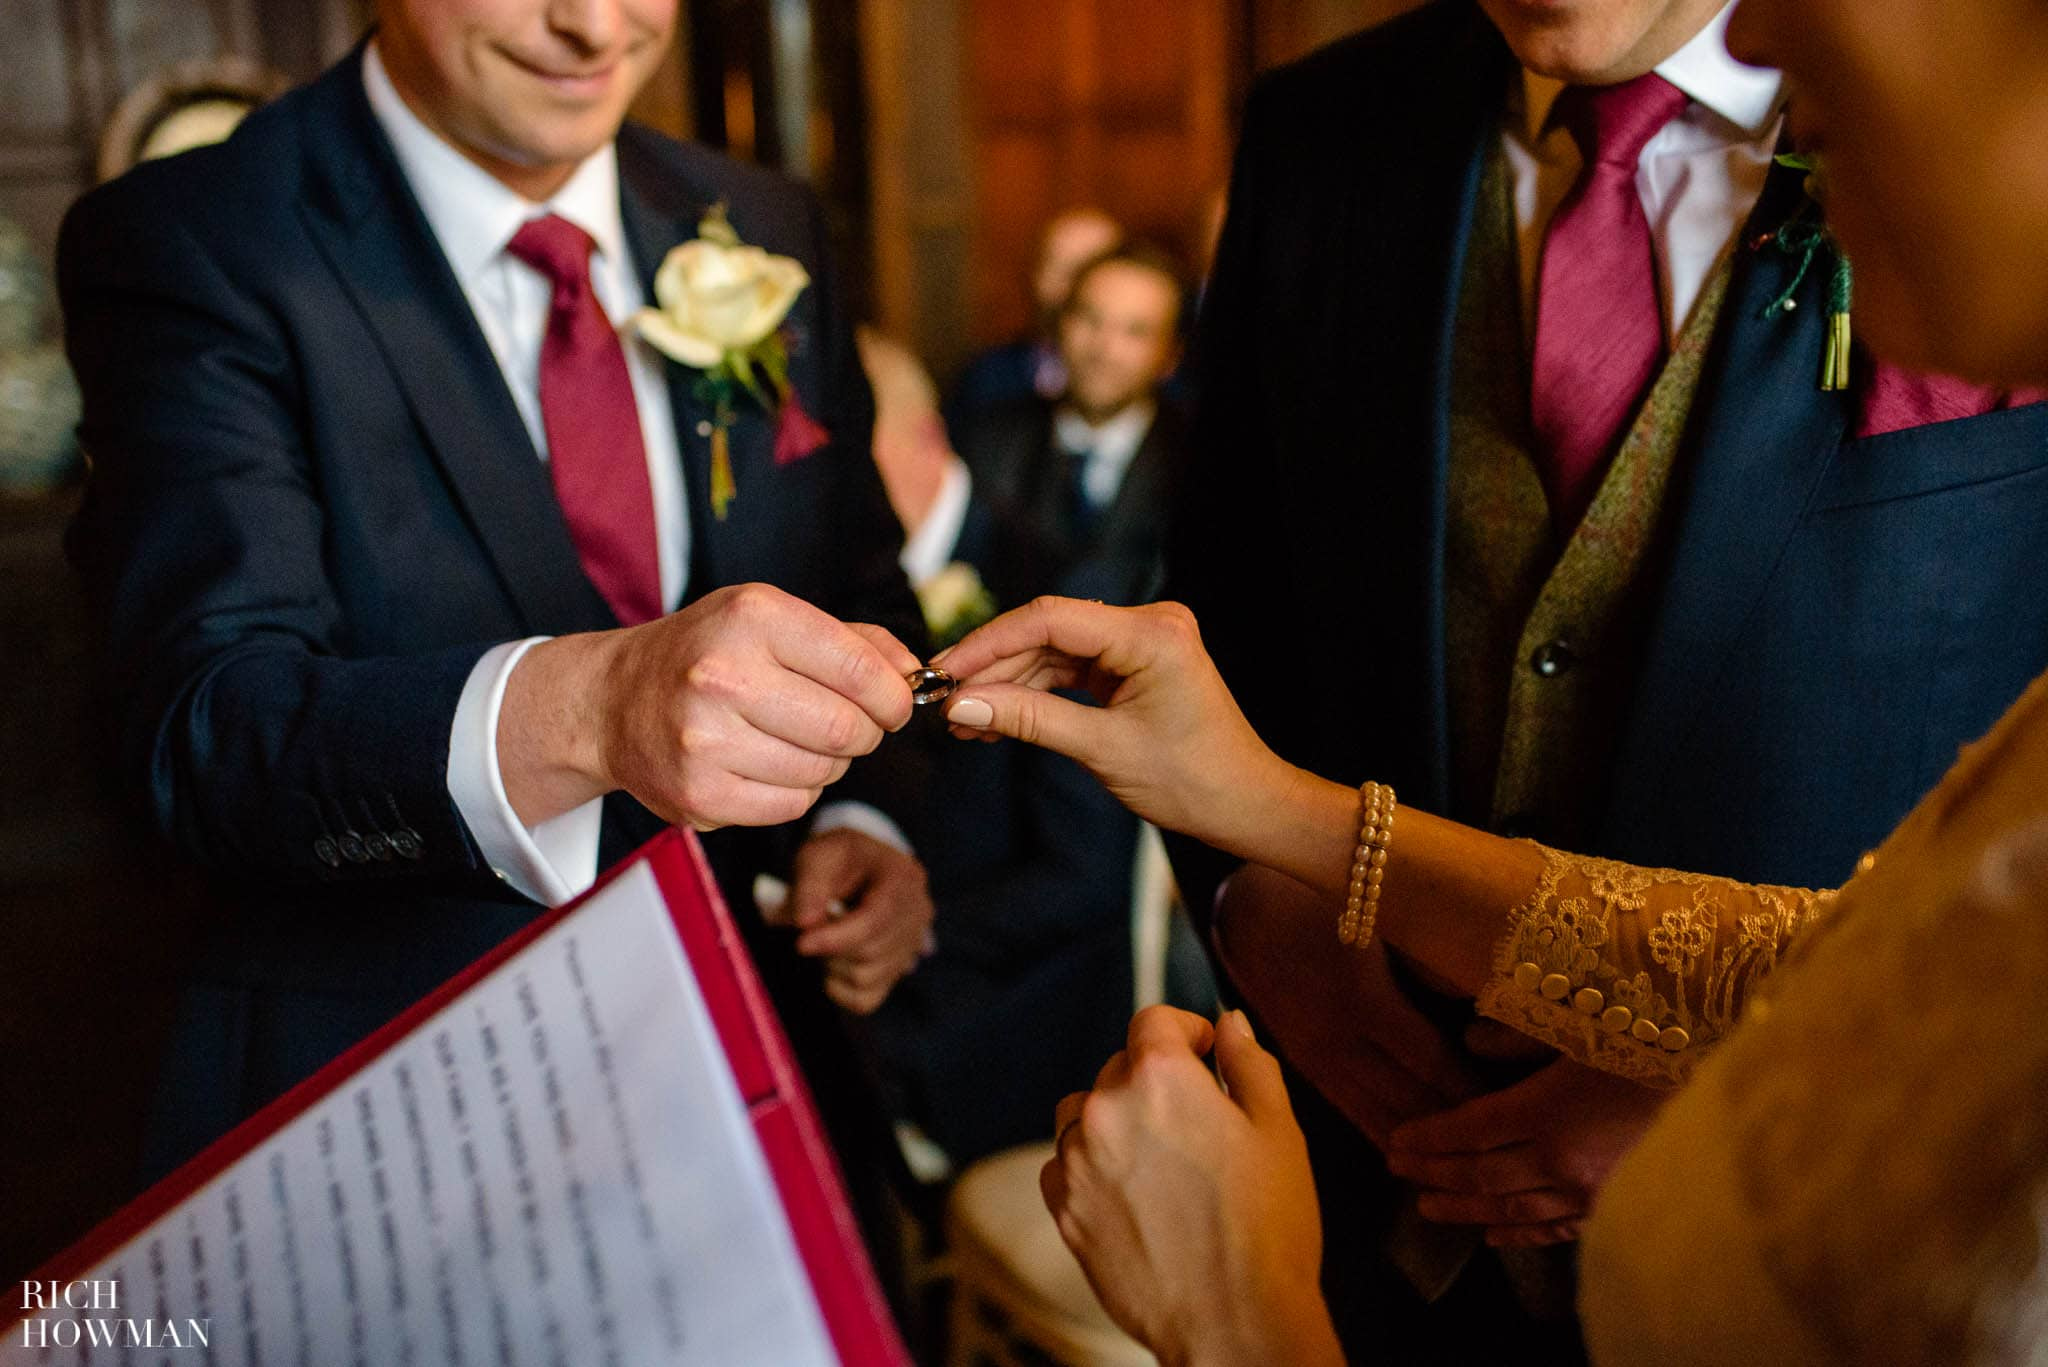 The Brides is handed the grooms wedding ring at their Huntsham Court wedding